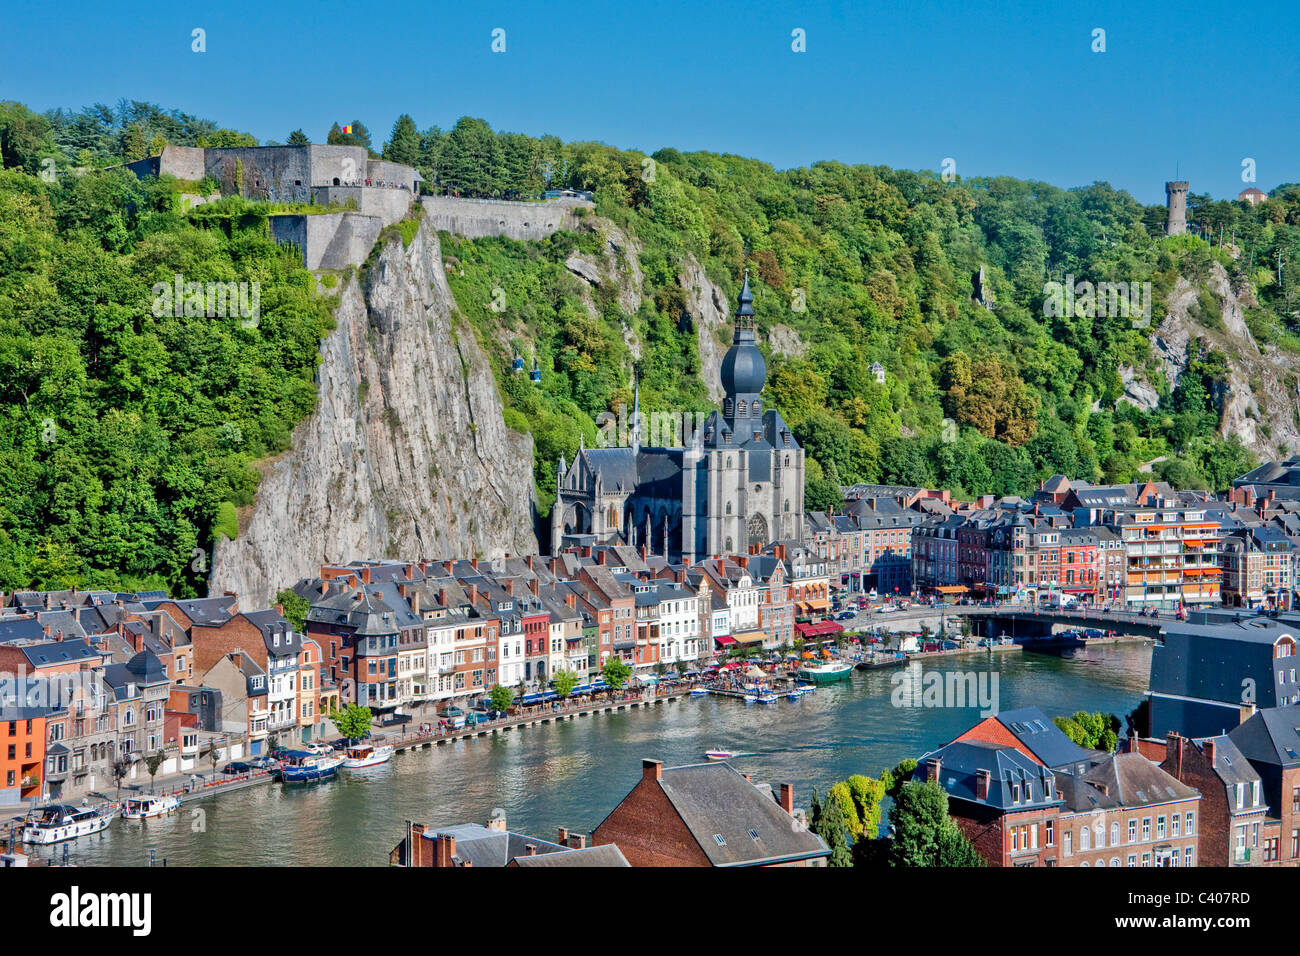 Belgium, Europe, Dinant, stronghold, castle, cliff, houses, homes, river, flow, boat, church - Stock Image